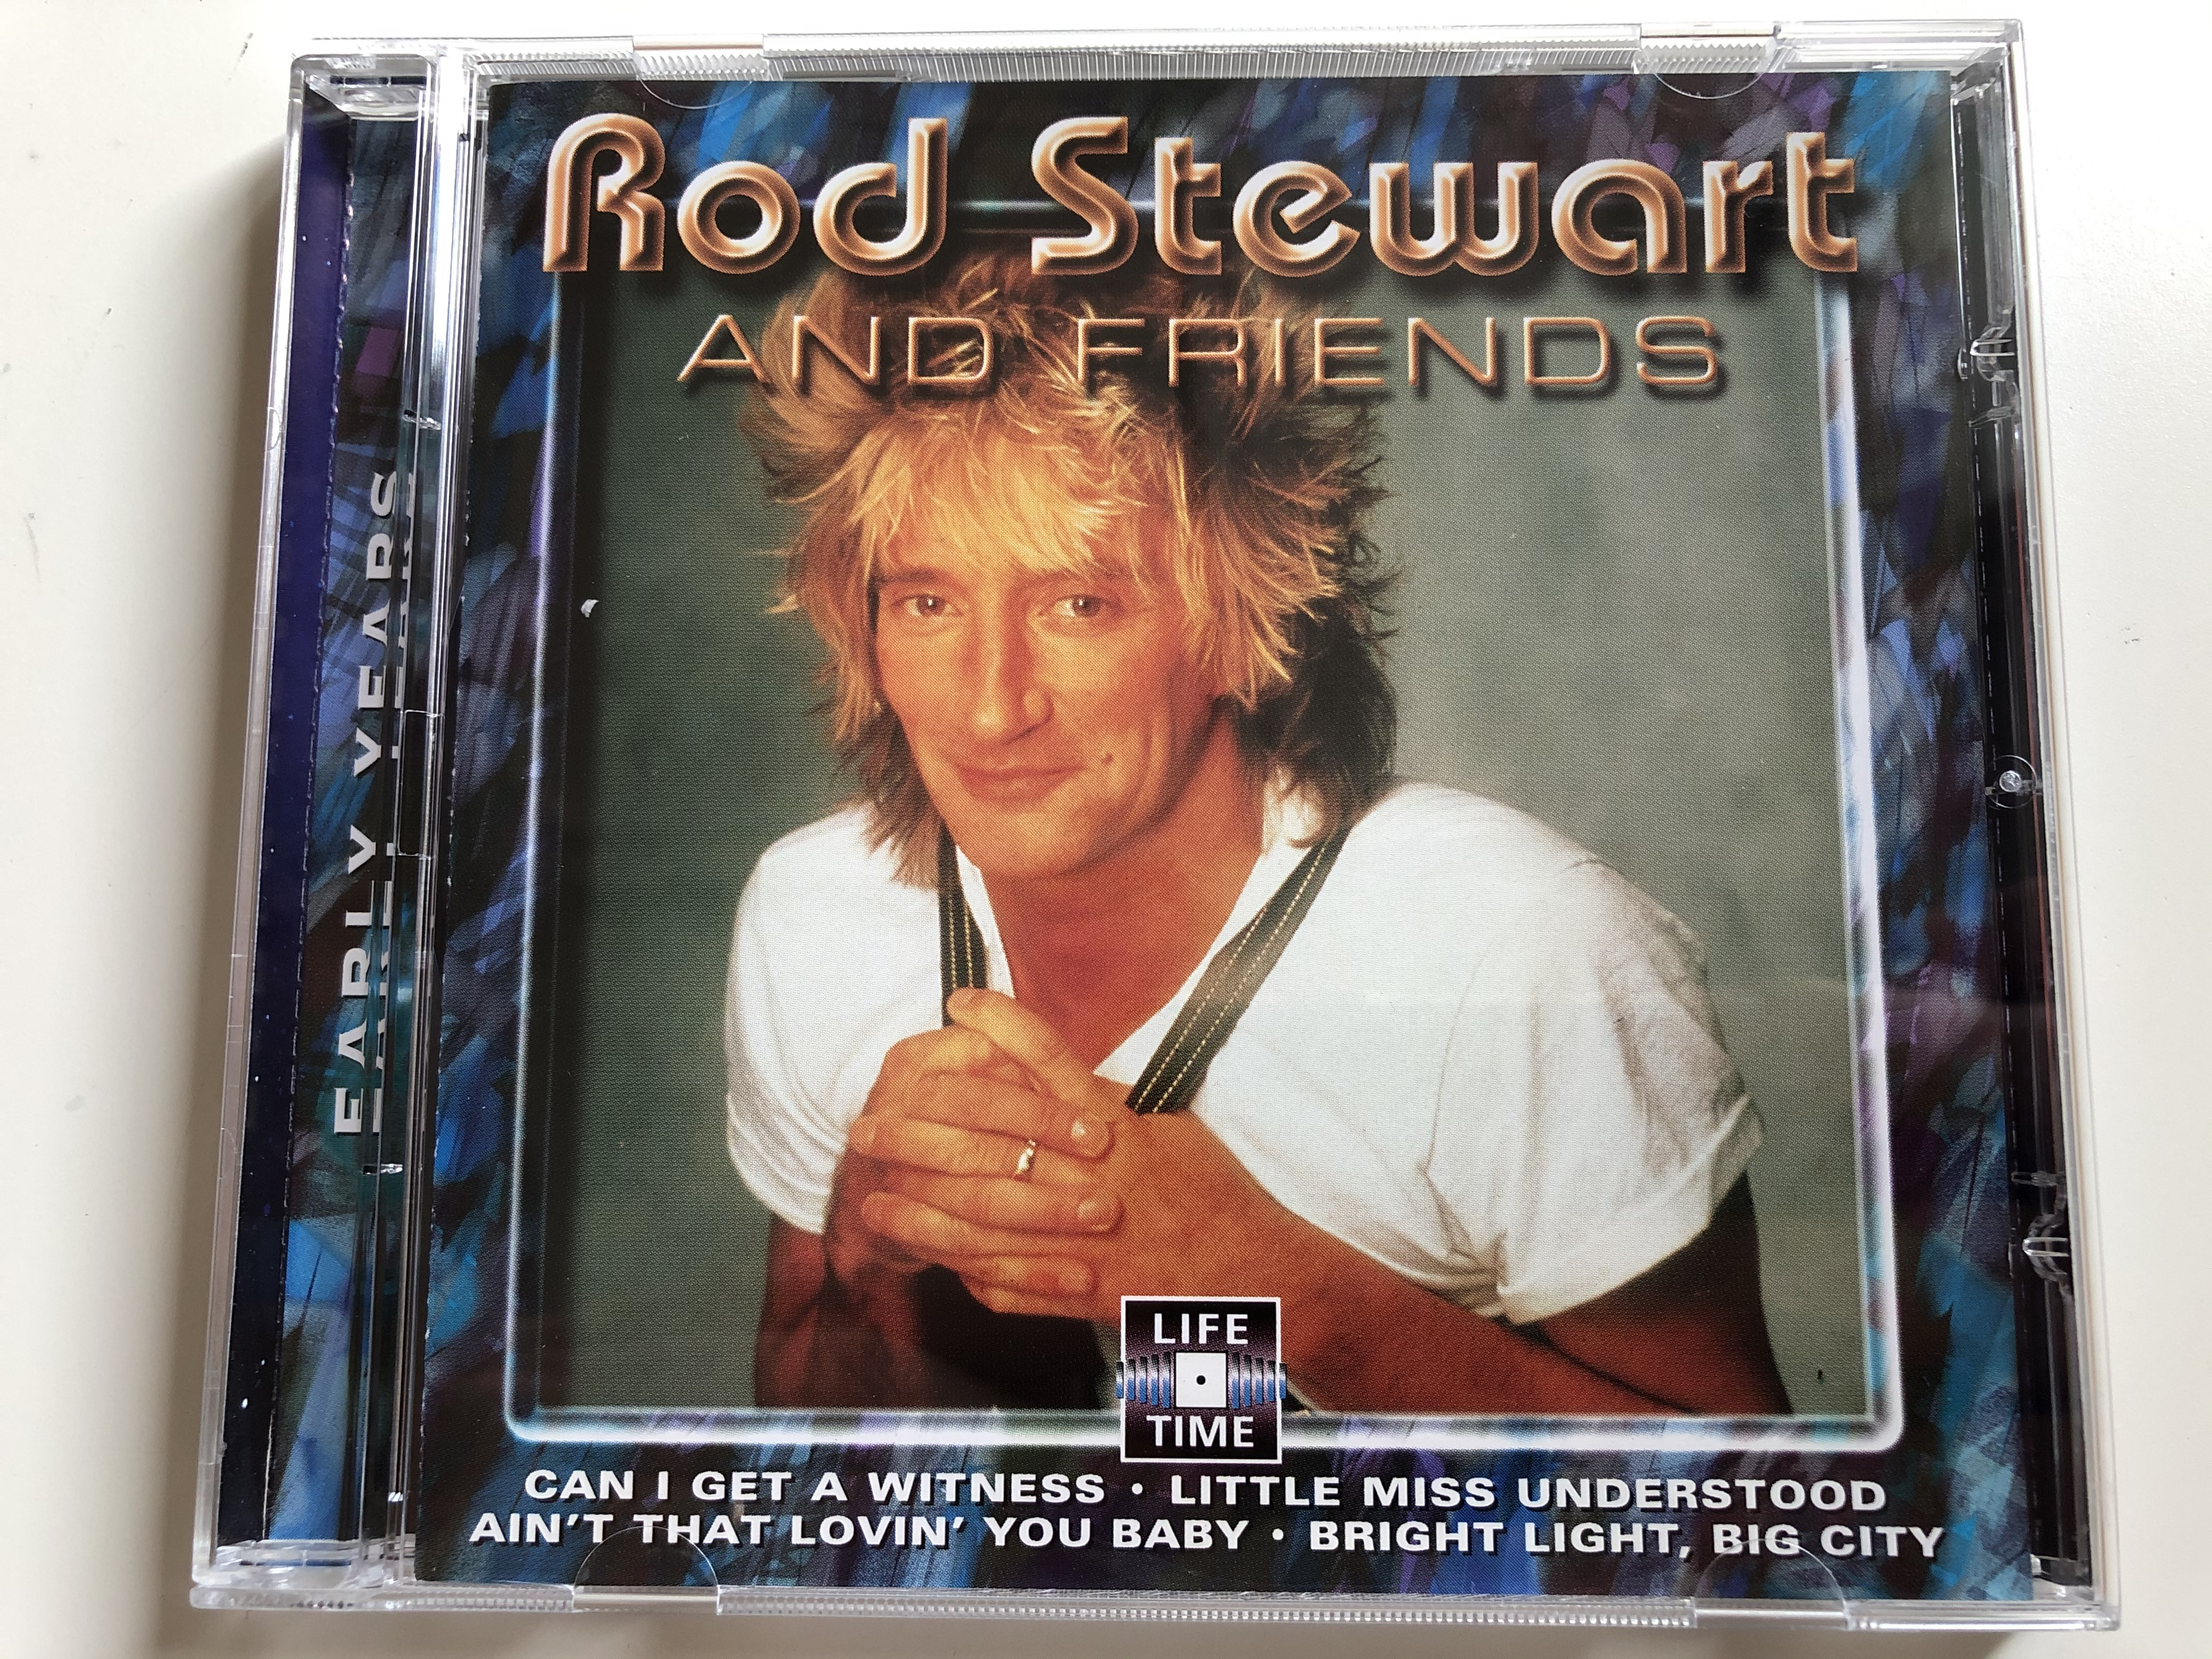 rod-stewart-and-friends-early-years-can-i-get-a-witness-little-miss-understood-ain-t-that-lovin-you-baby-bright-lights-big-city-life-time-audio-cd-lt-5091-1-.jpg